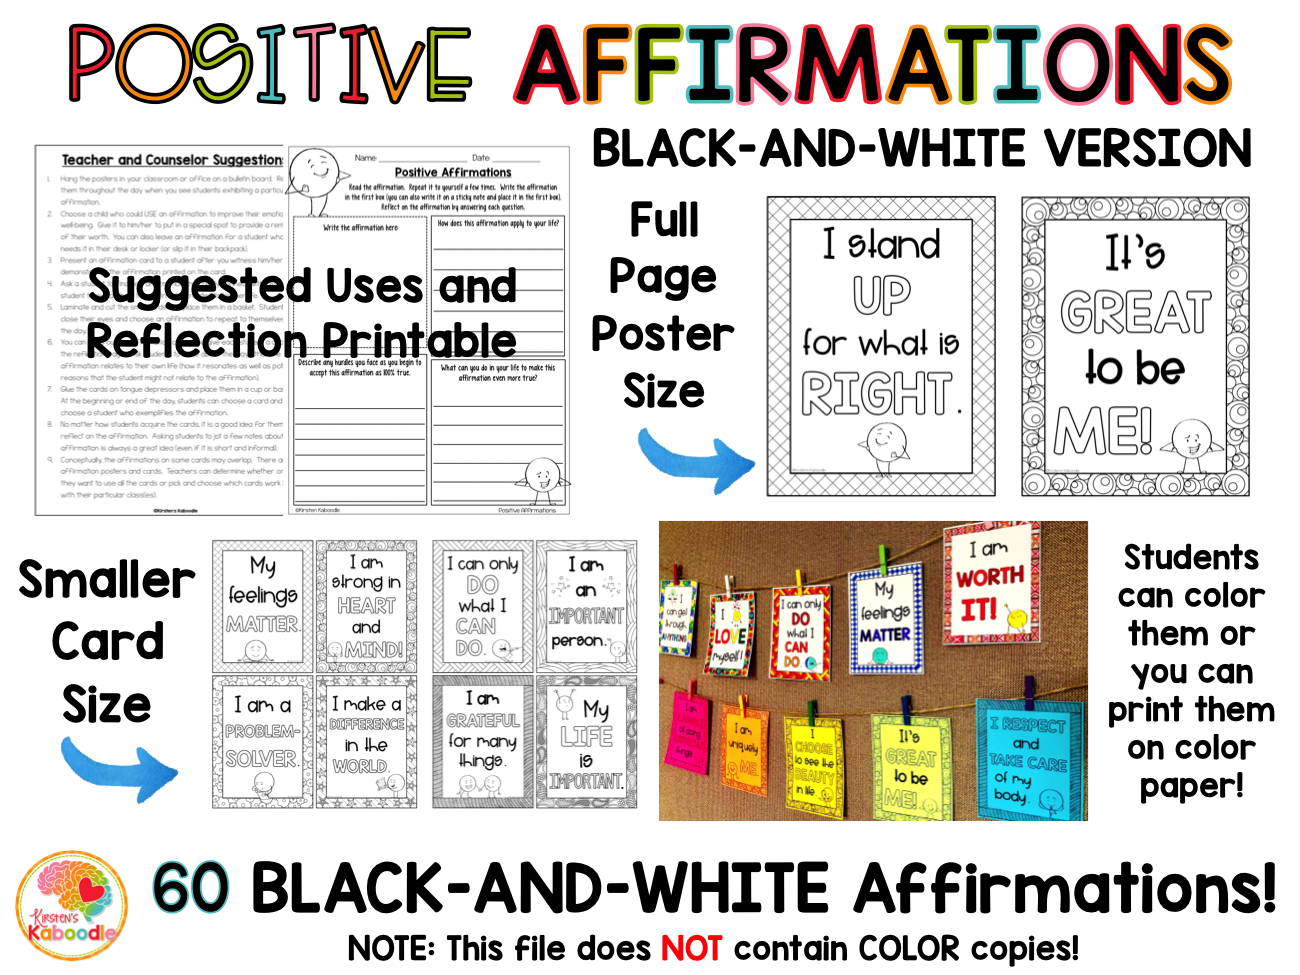 Positive Affirmations Posters and Cards: Black-and White Version